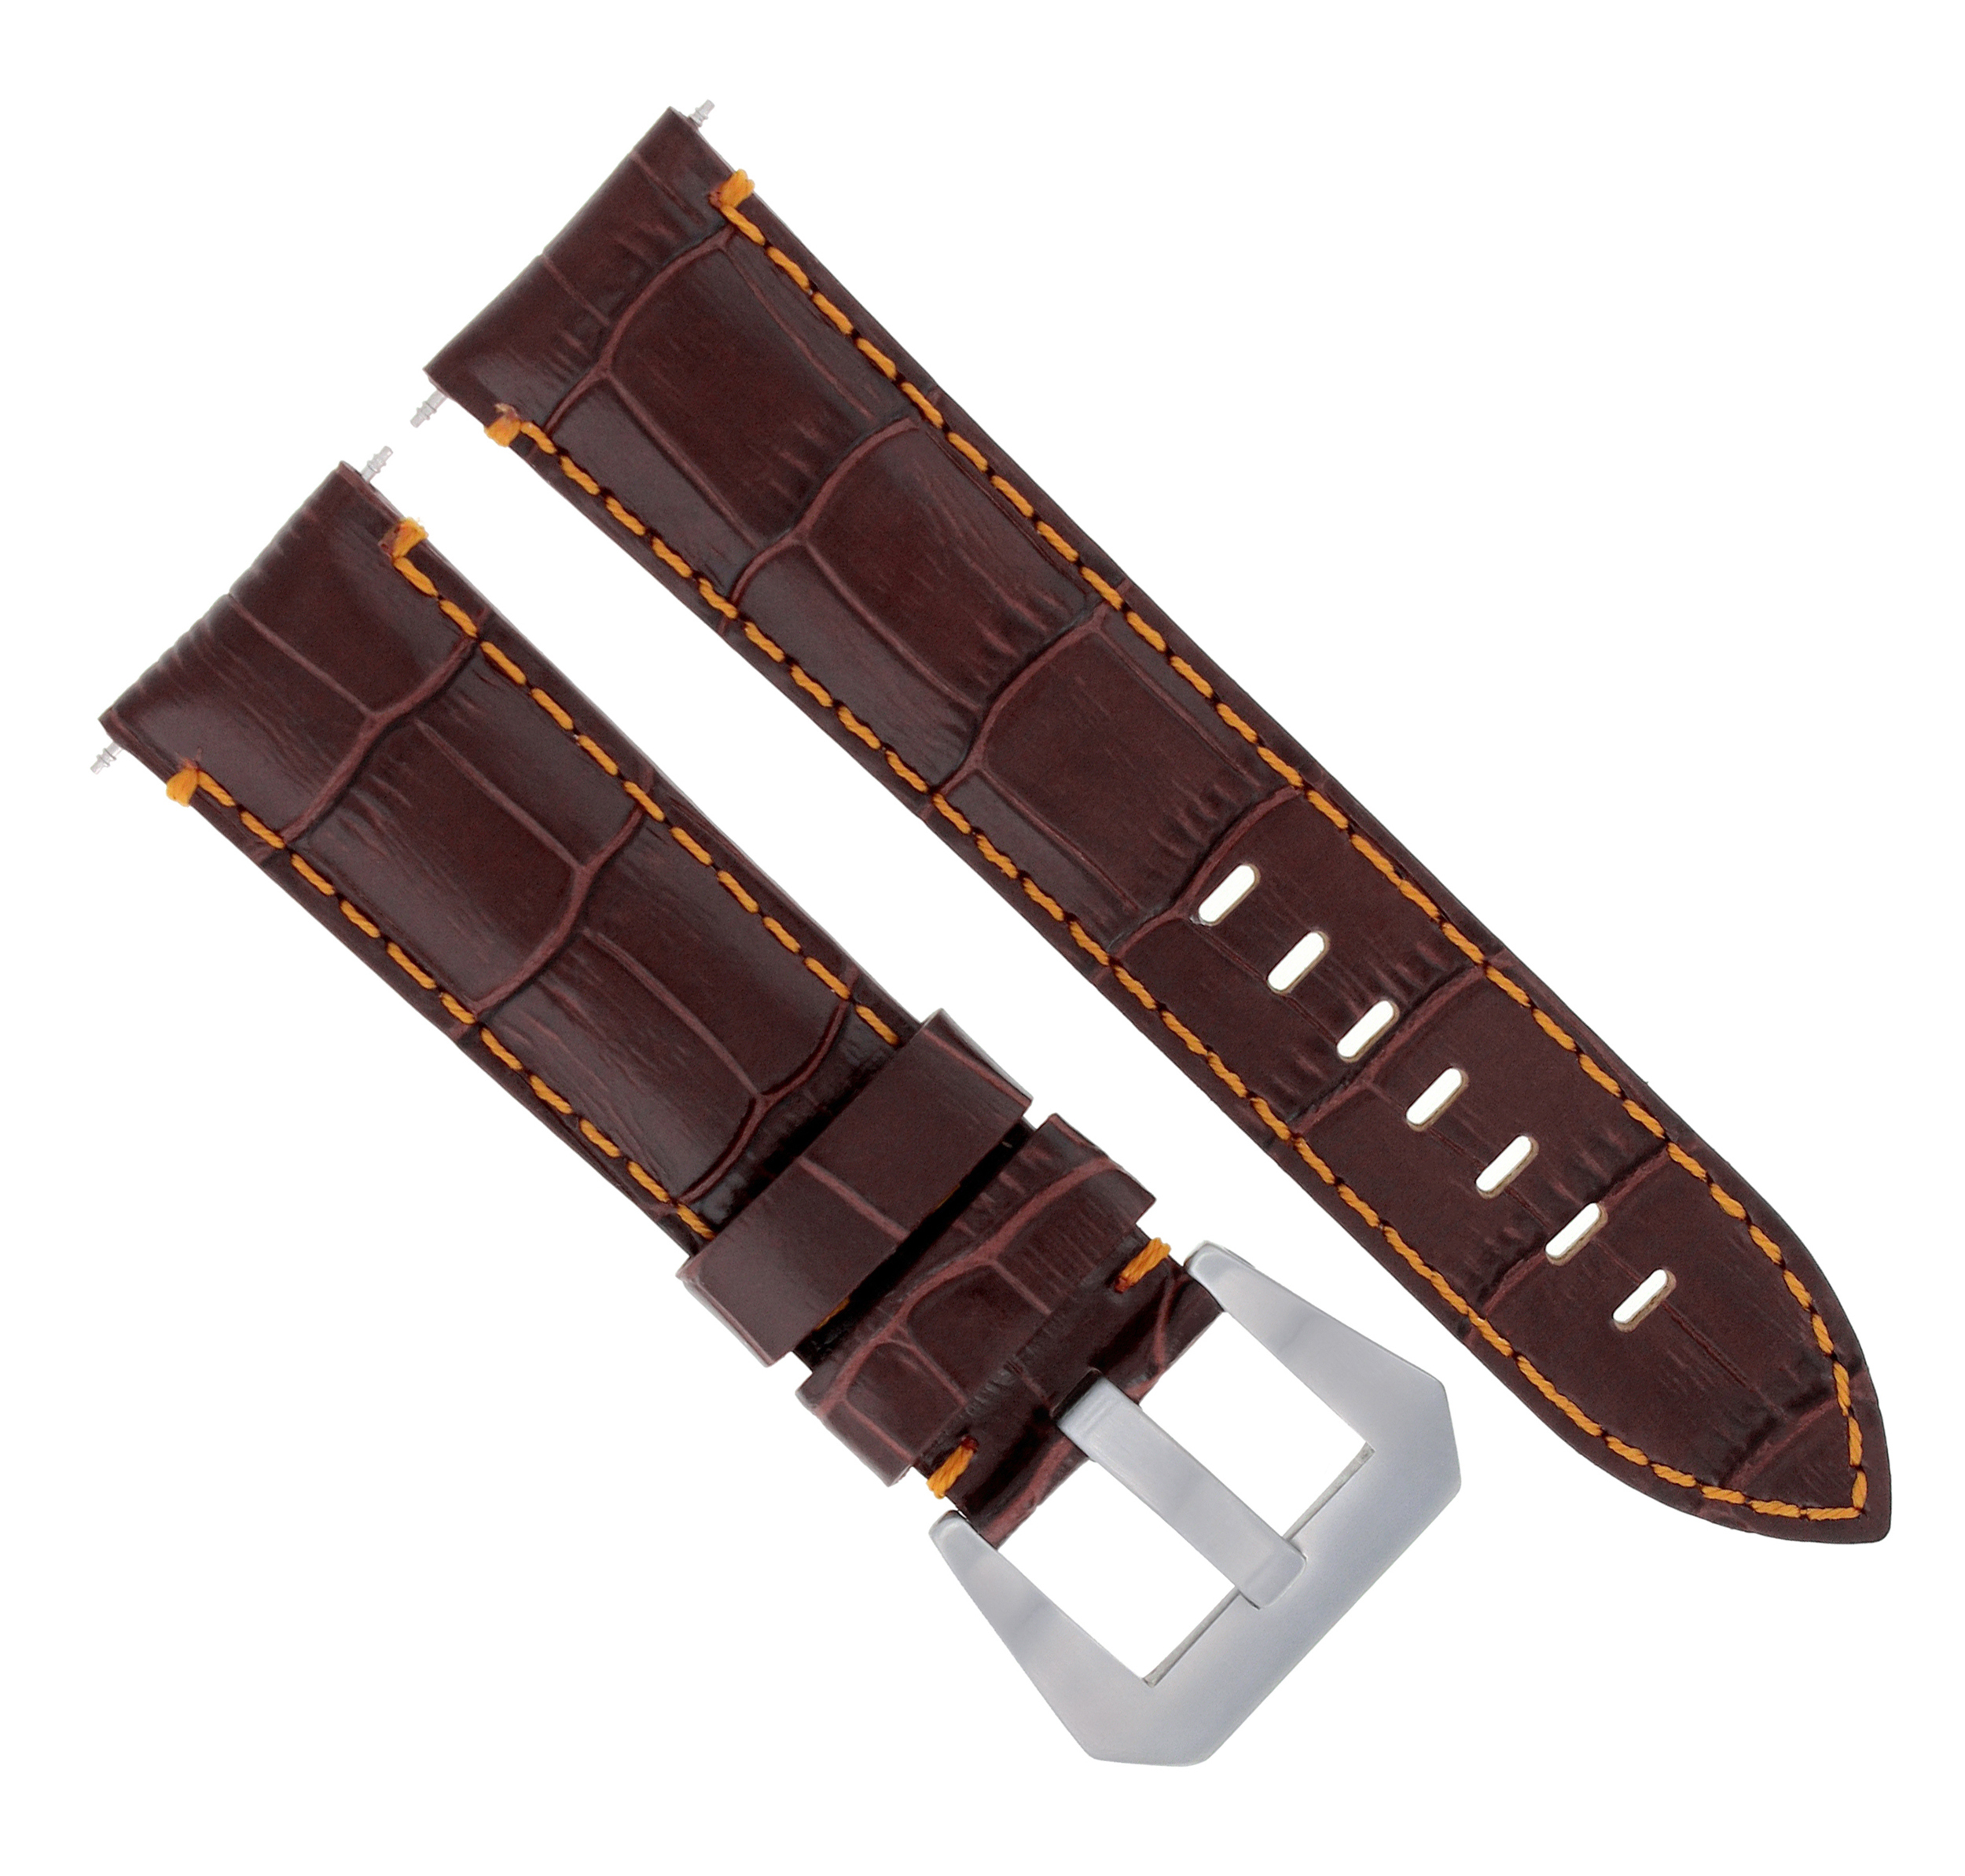 336edd961eedc Details about leather watch band strap for anonimo watch brown jpg  2500x2387 22mm lesther band watch